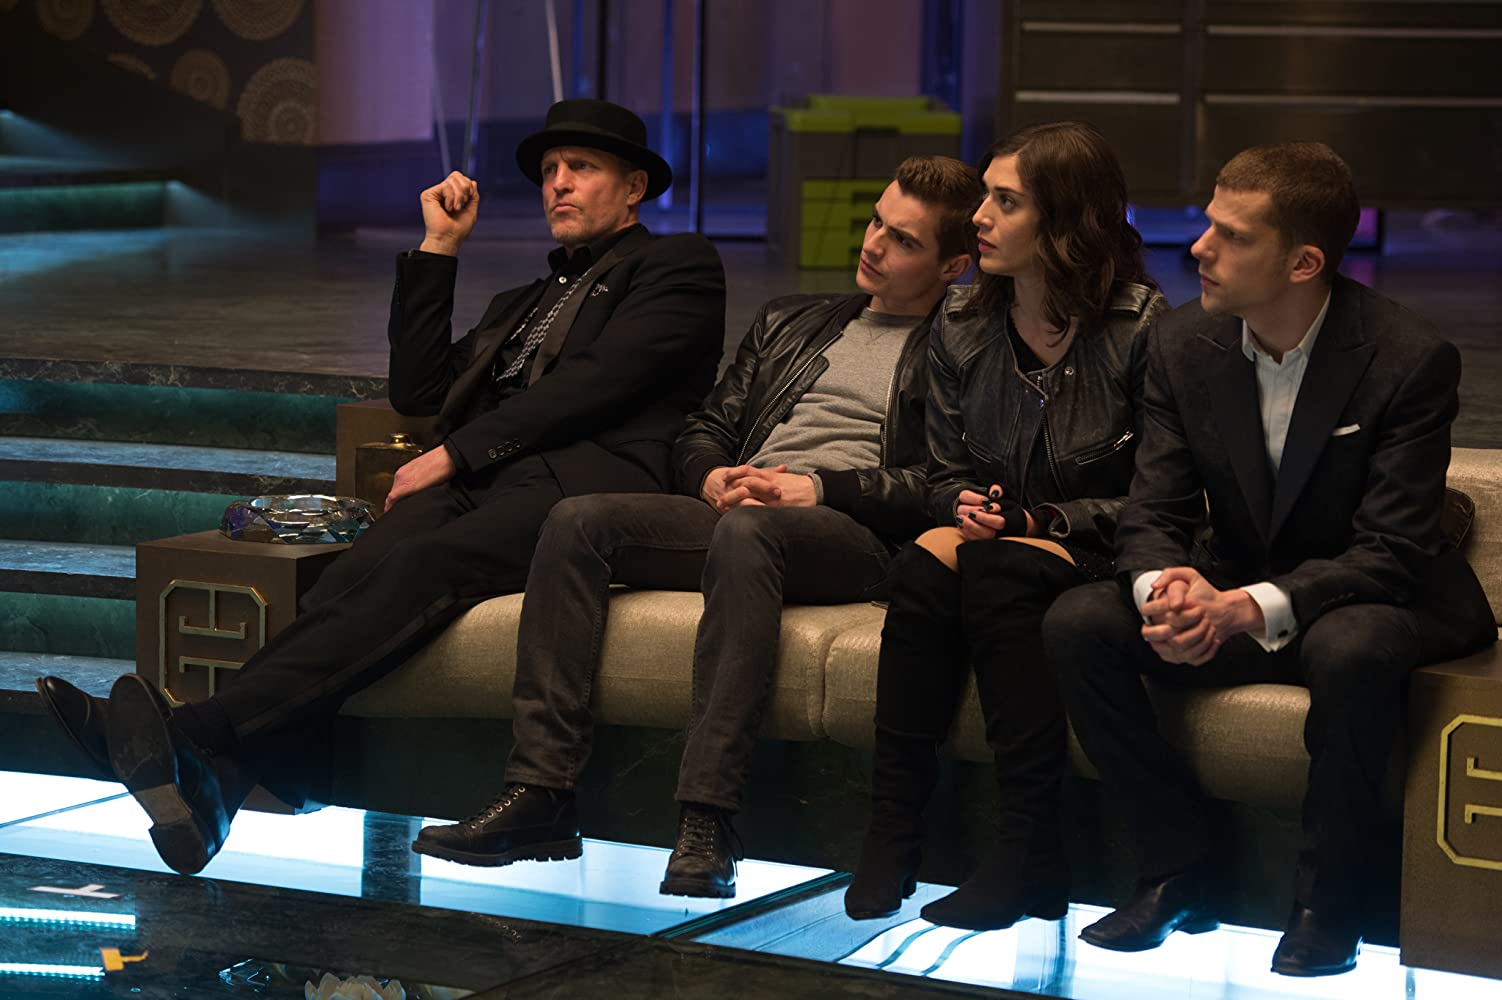 Woody Harrelson, Lizzy Caplan, Jesse Eisenberg, and Dave Franco in Now You See Me 2 (2016)